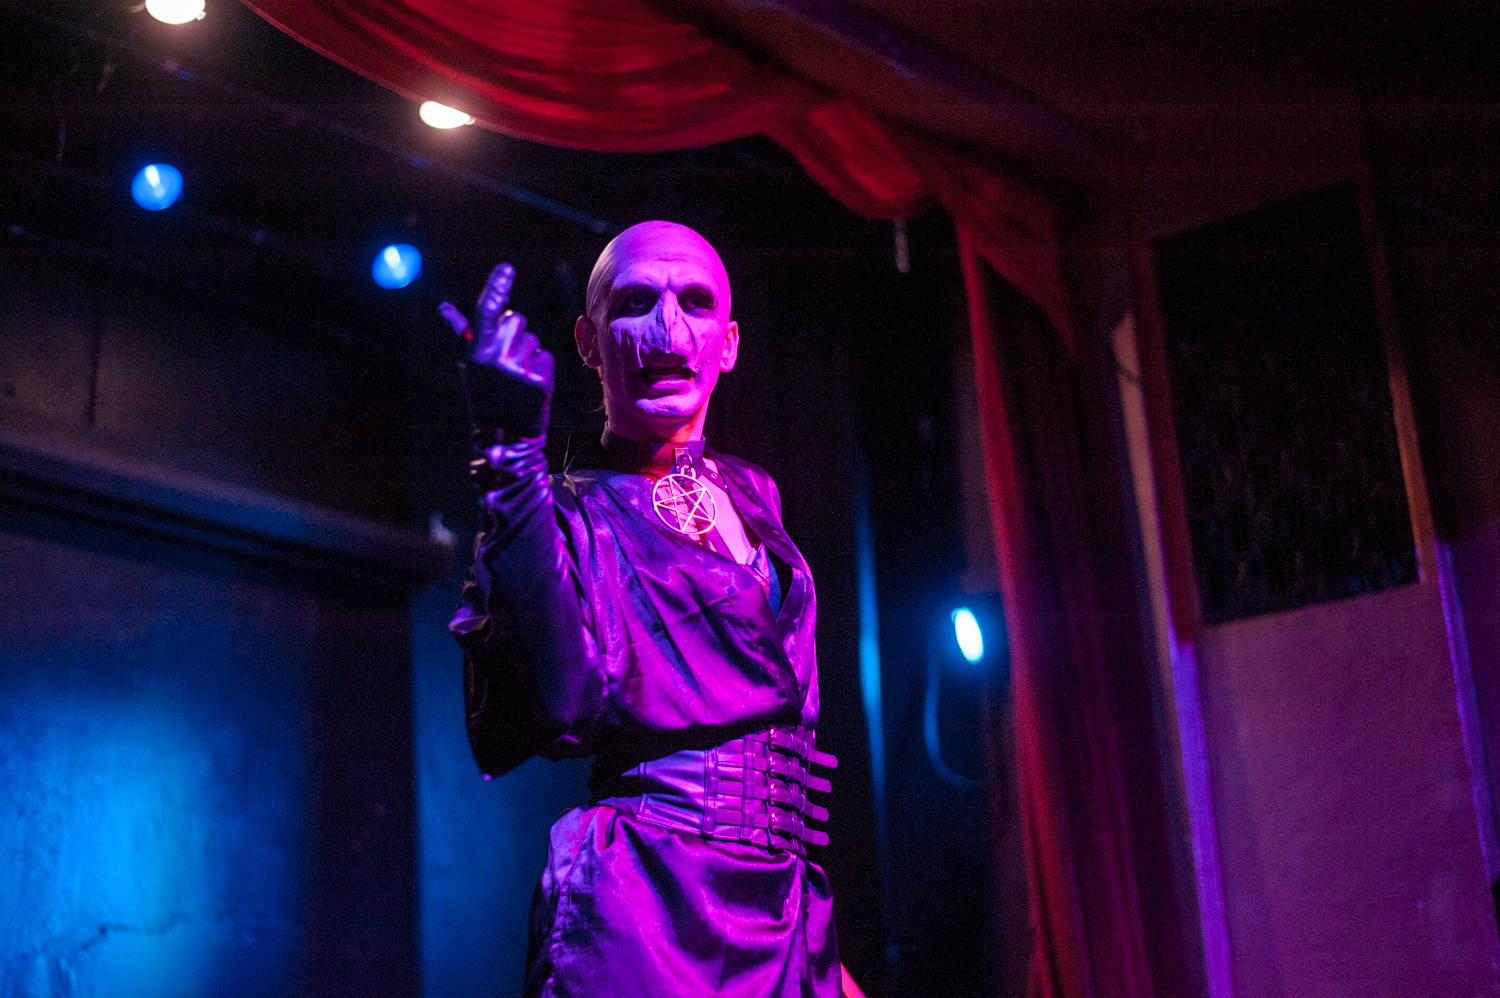 "The Rendezvous and IDK What Productions hosted a two-day Drag Show series dedicated to Harry Potter. We attended Saturday's 'Drag Against the Dark Arts' show - and were NOT let down. You're a DIVA, Harry! The events were hosted by newby drag queens{&nbsp;}Stasia Coup and Killer Bunny, and featured Bosco and Cranberry. Find the next Rendezvous show{&nbsp;}<a  href=""https://www.therendezvous.rocks/"" target=""_blank"" title=""https://www.therendezvous.rocks/"">online</a>! (Image: Elizabeth Crook / Seattle Refined){&nbsp;}"